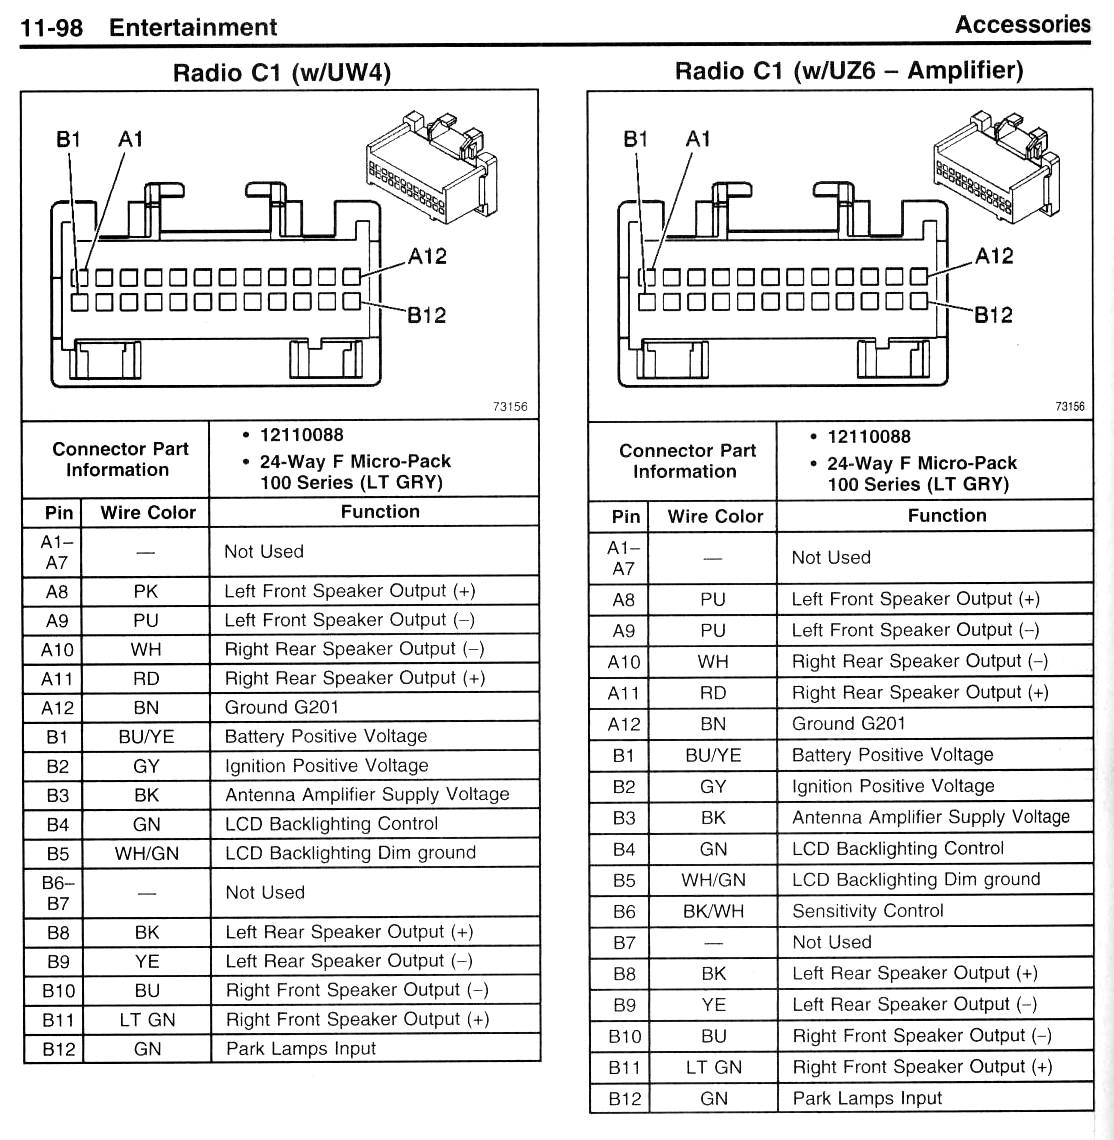 Cadillac Deville Factory   Wiring Diagram Car Pontiac Montana Wiring Diagrams Pontiac Montana Wiring Car Cadillac Wiring Diagram Cadillac C together with Hqdefault further Pontiac Vibe Stereo Wiring Connector furthermore Maxresdefault in addition Maxresdefault. on 2000 cadillac deville wiring diagrams